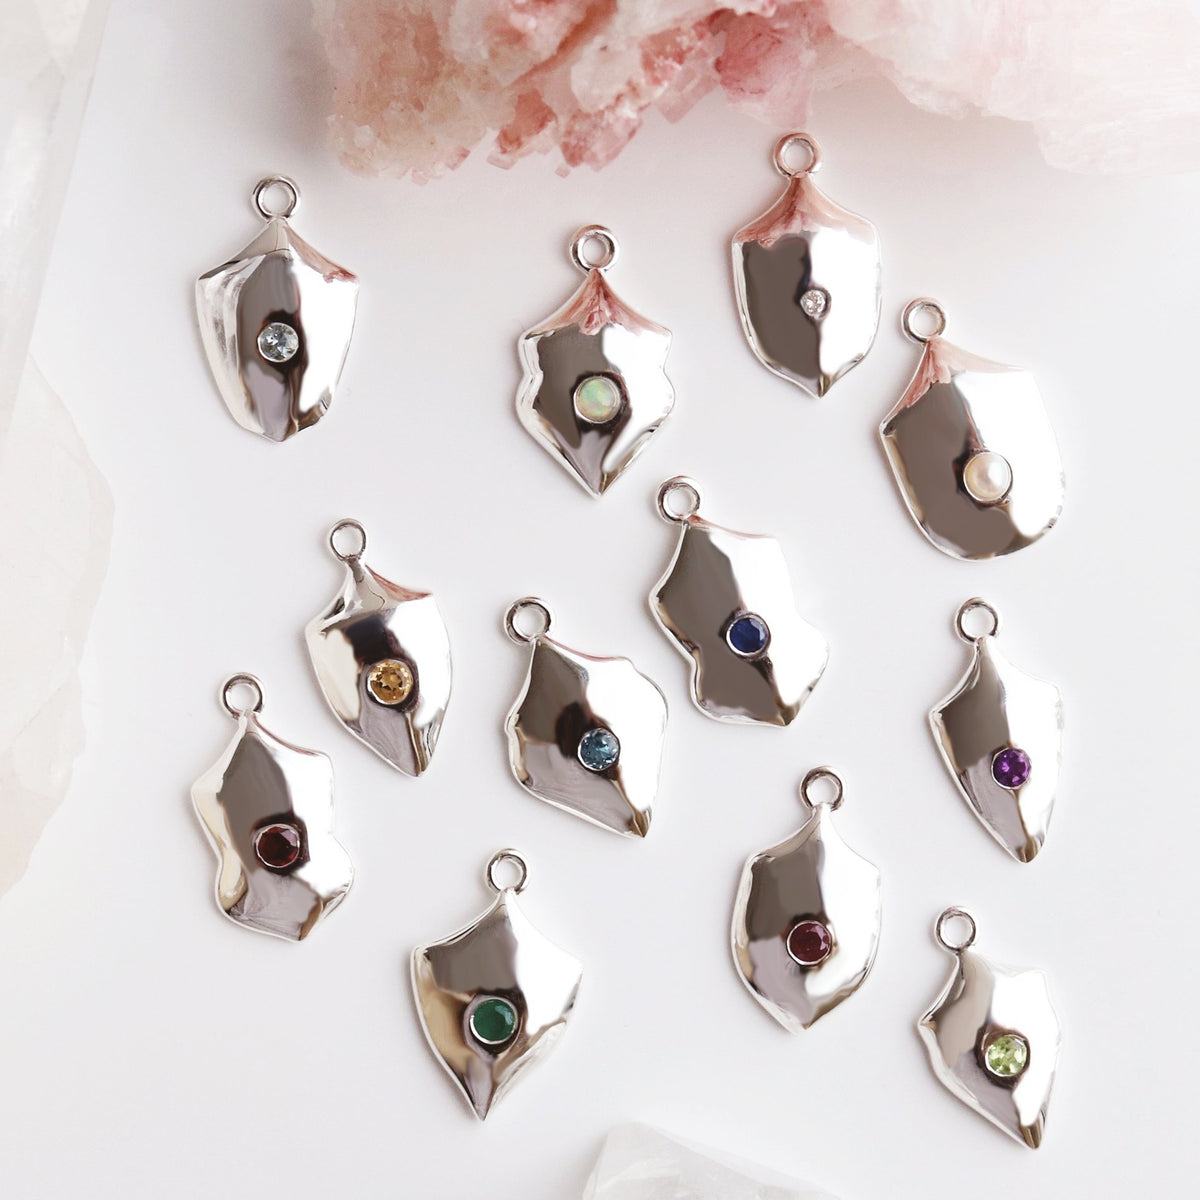 LEGACY APRIL BIRTHSTONE SHIELD ICON - DIAMOND & SILVER - SO PRETTY CARA COTTER